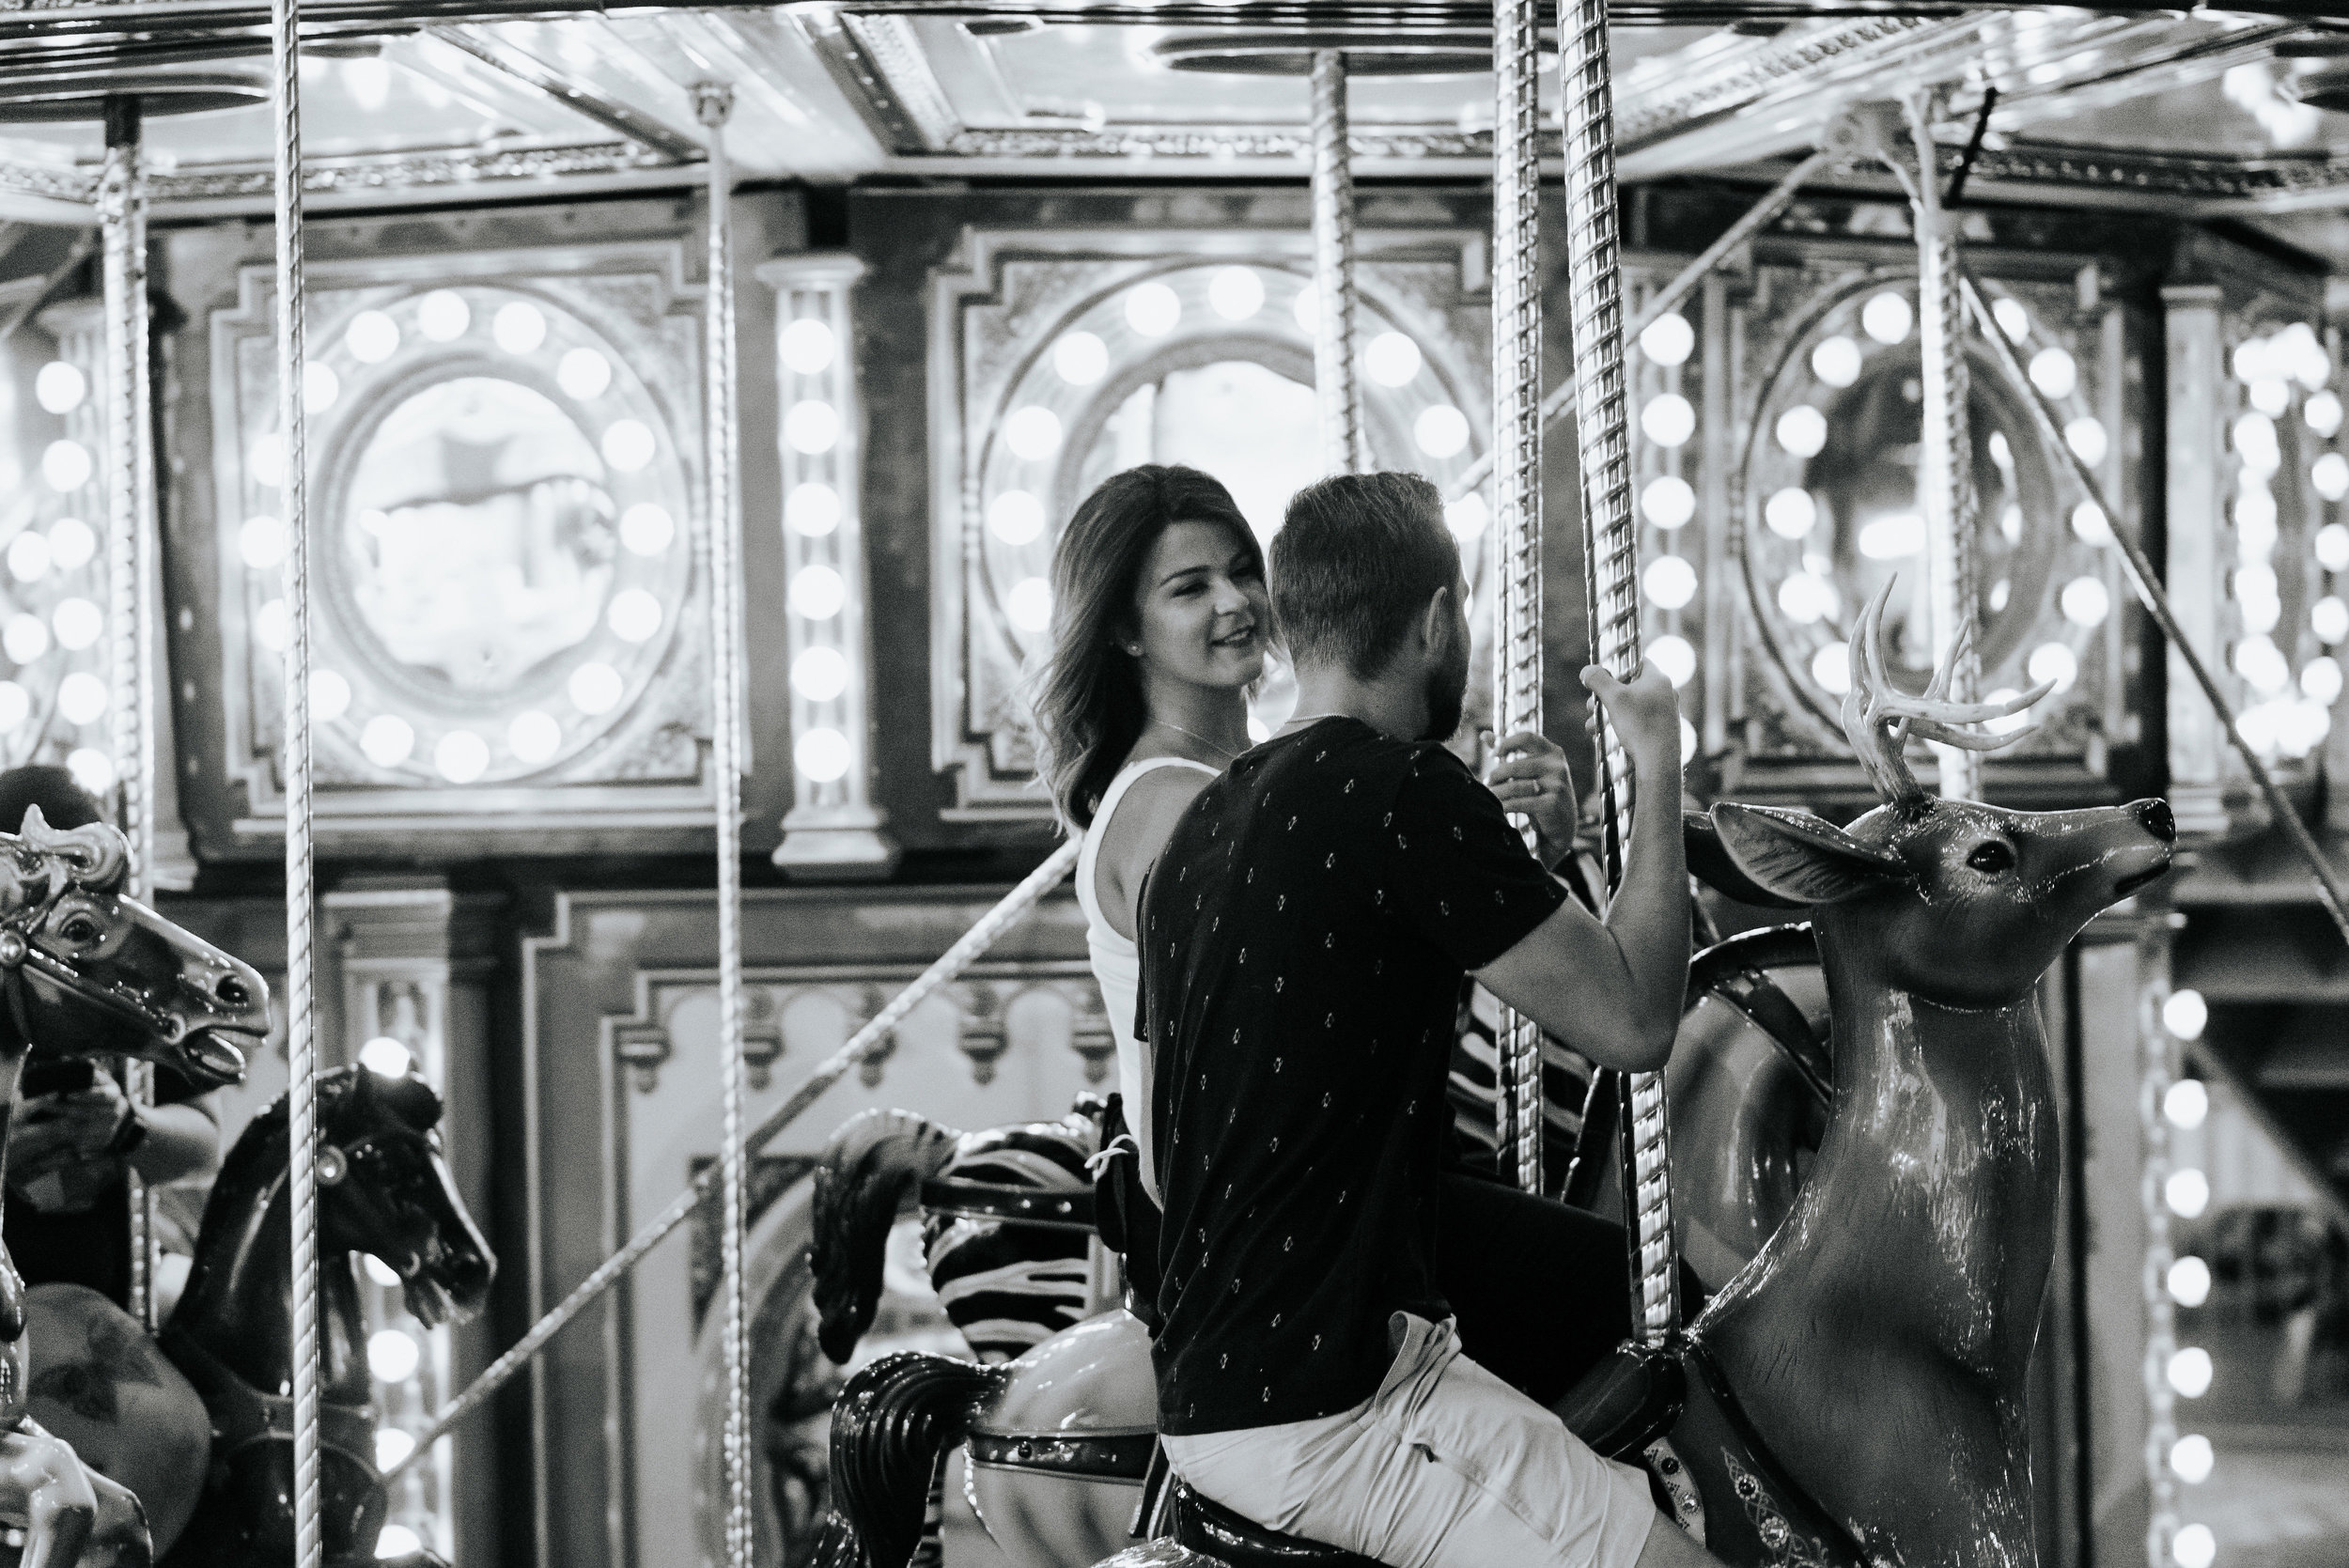 Ana_Justin_Engagement_Session_Miami_Dade_Fair_Photography_by_V_7743.jpg